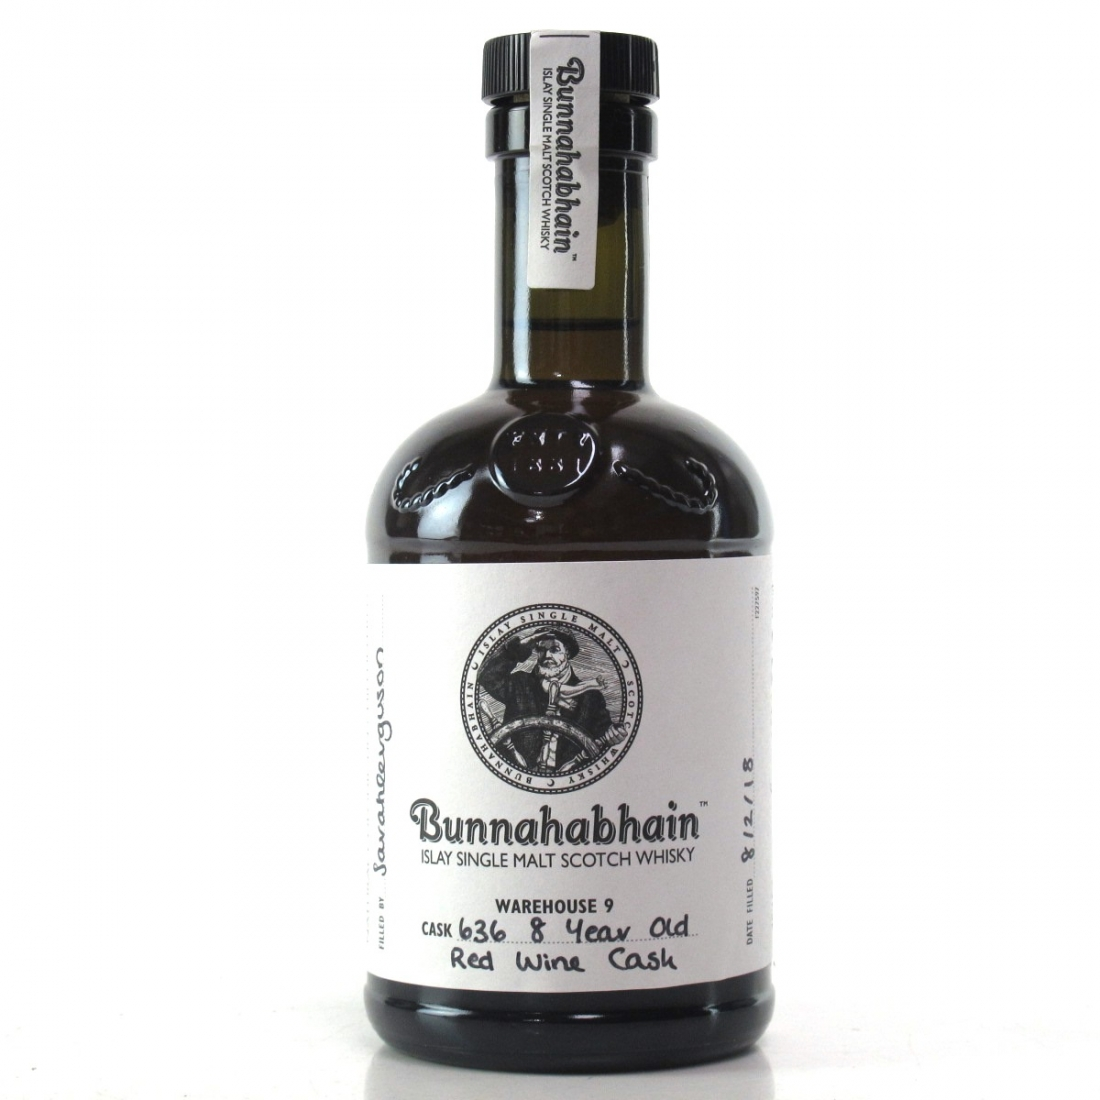 Bunnahabhain 8 Year Old Hand Filled 20cl / Red Wine Cask